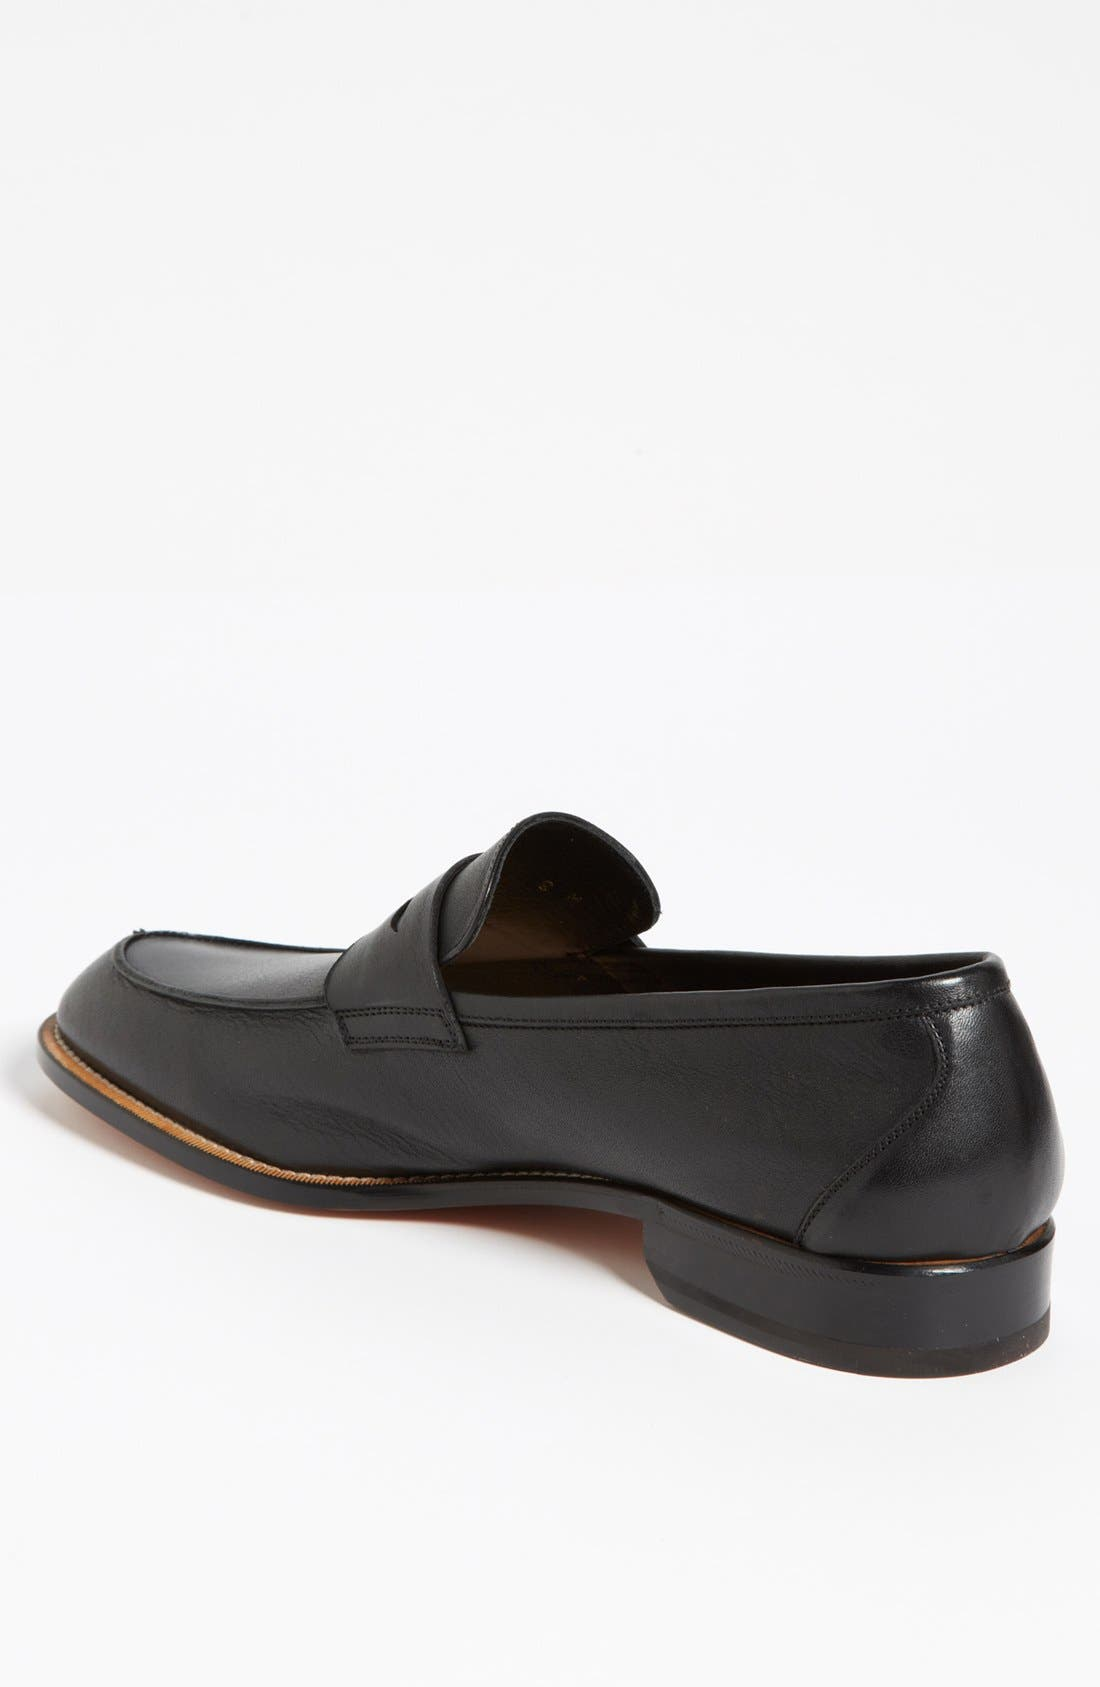 Alternate Image 2  - Bruno Magli 'Rotzo' Penny Loafer